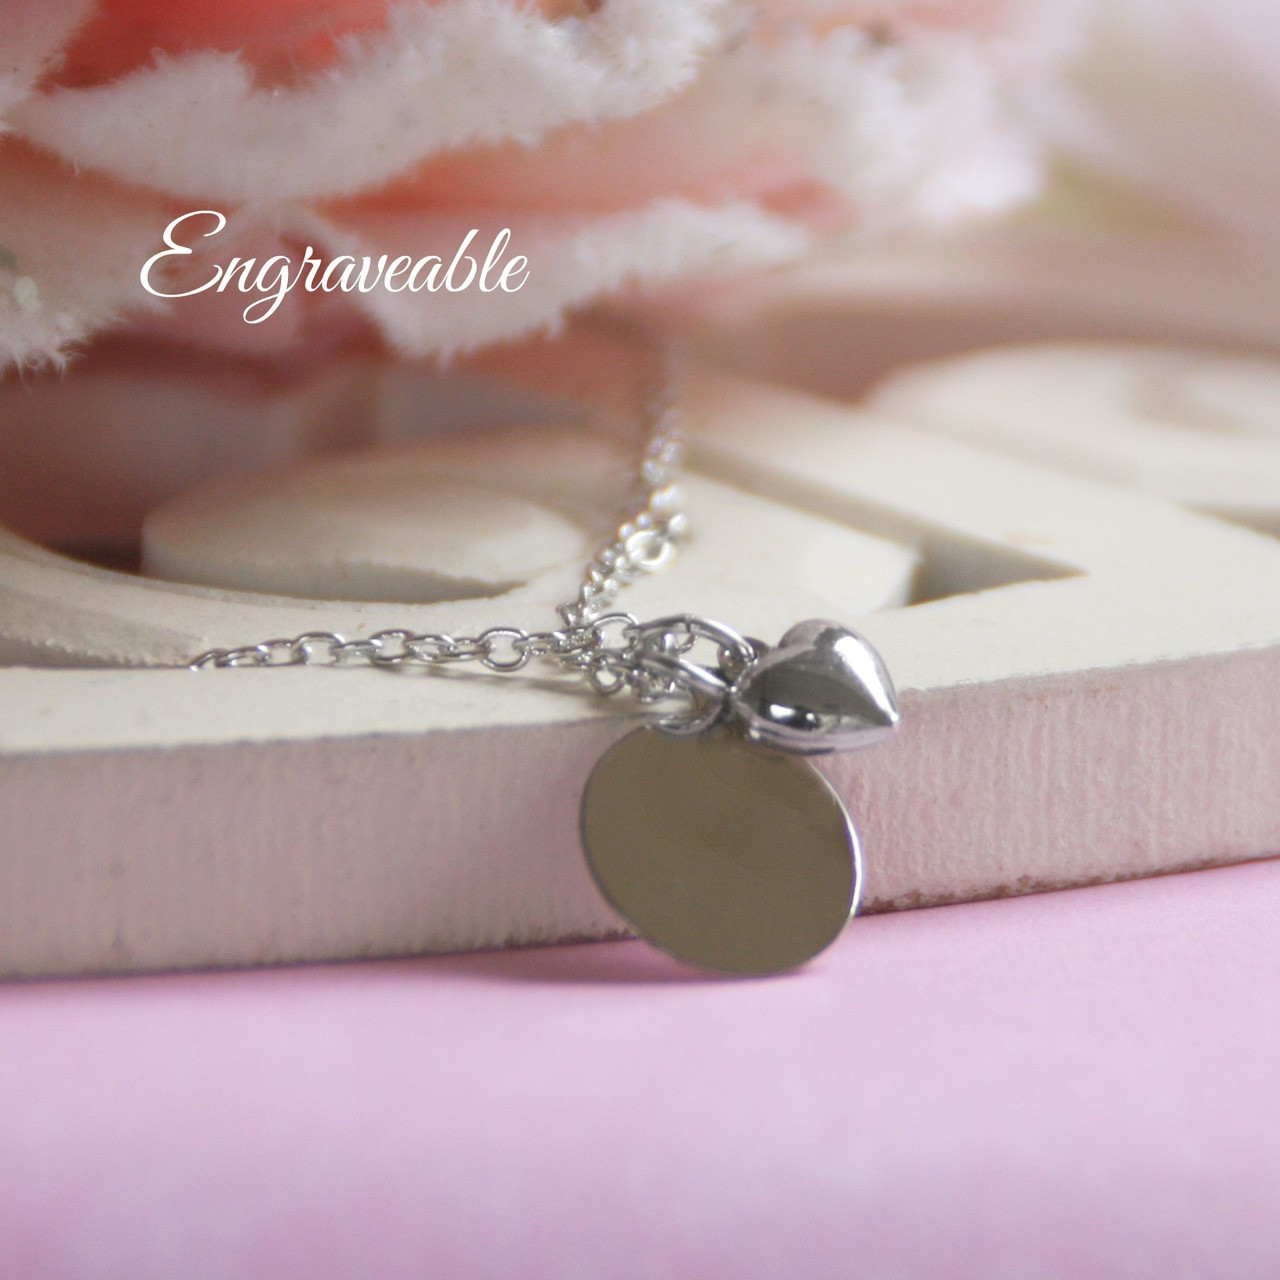 EG-8  Engraveable Stainless Puffed Heart Necklace